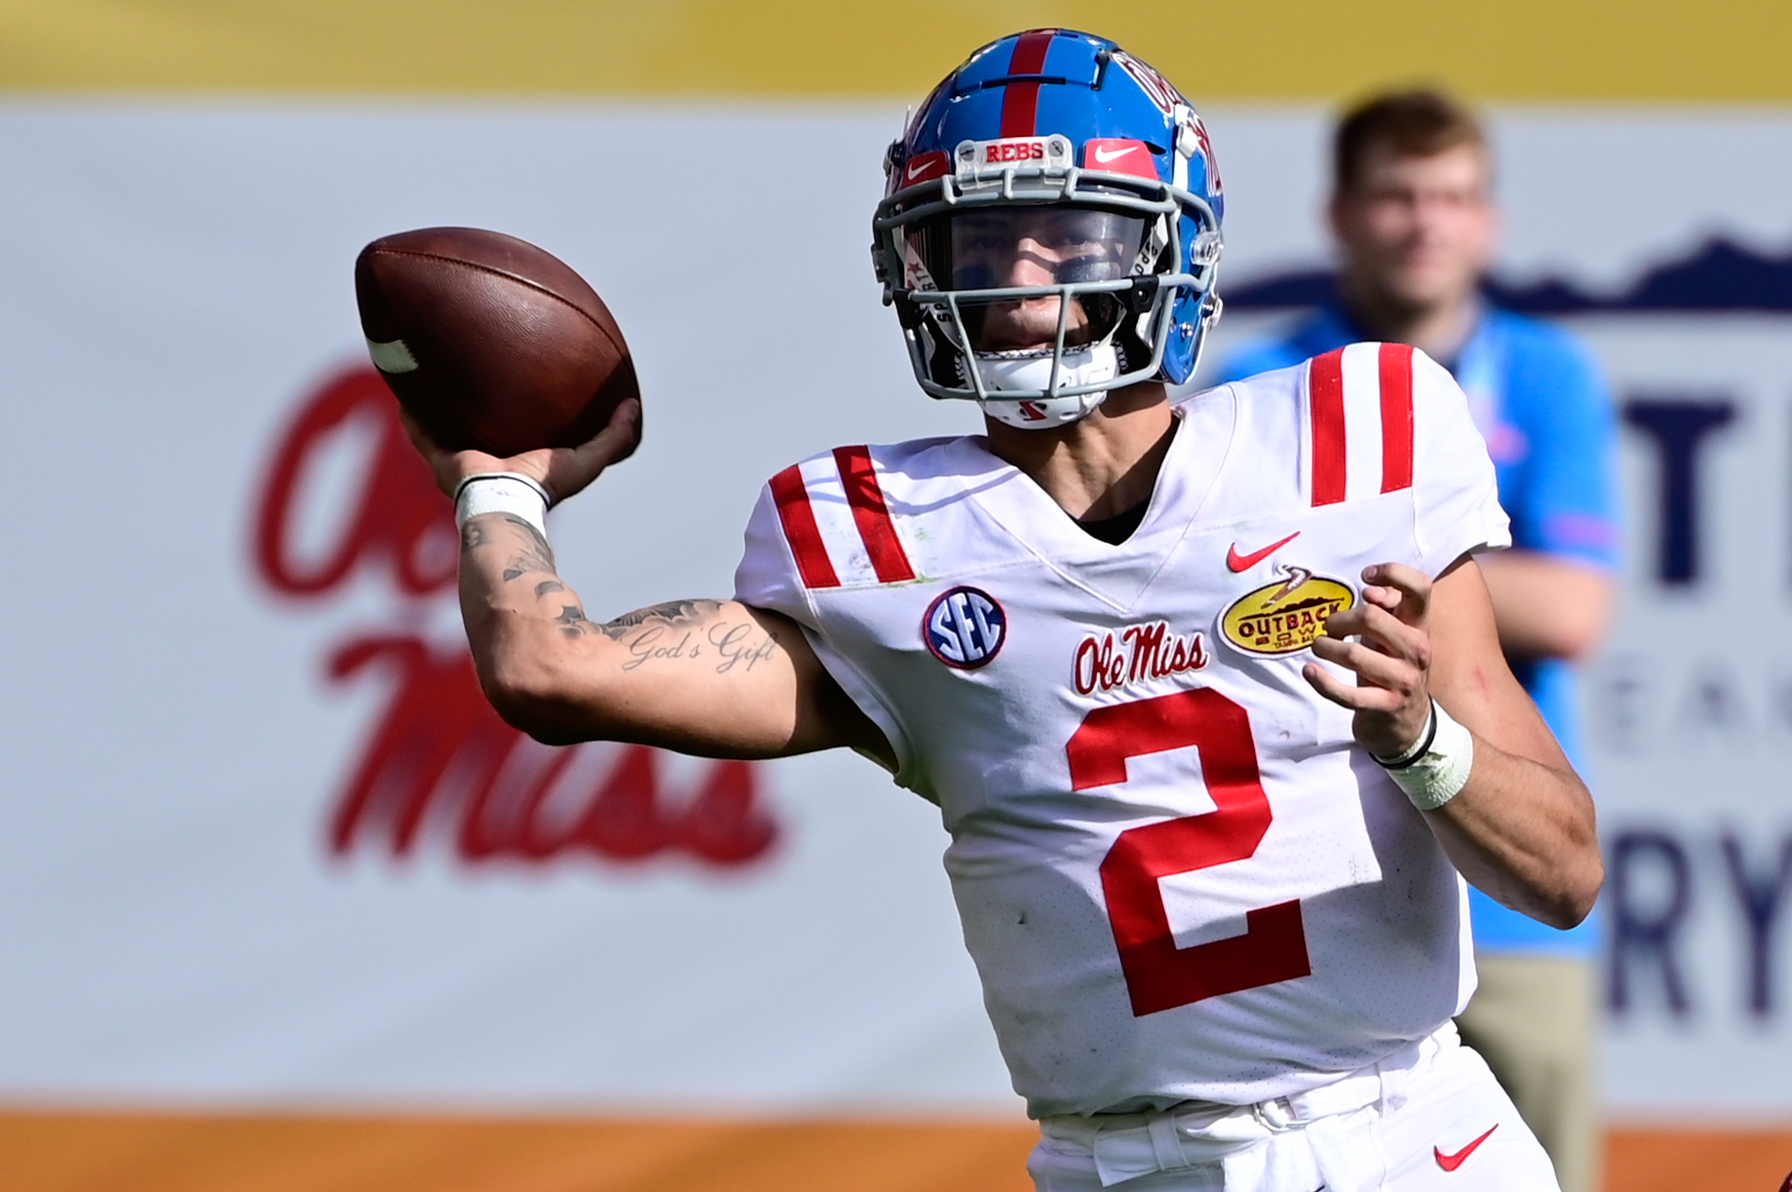 does-the-almighty-sec-enter-2021-with-a-quarterback-problem?